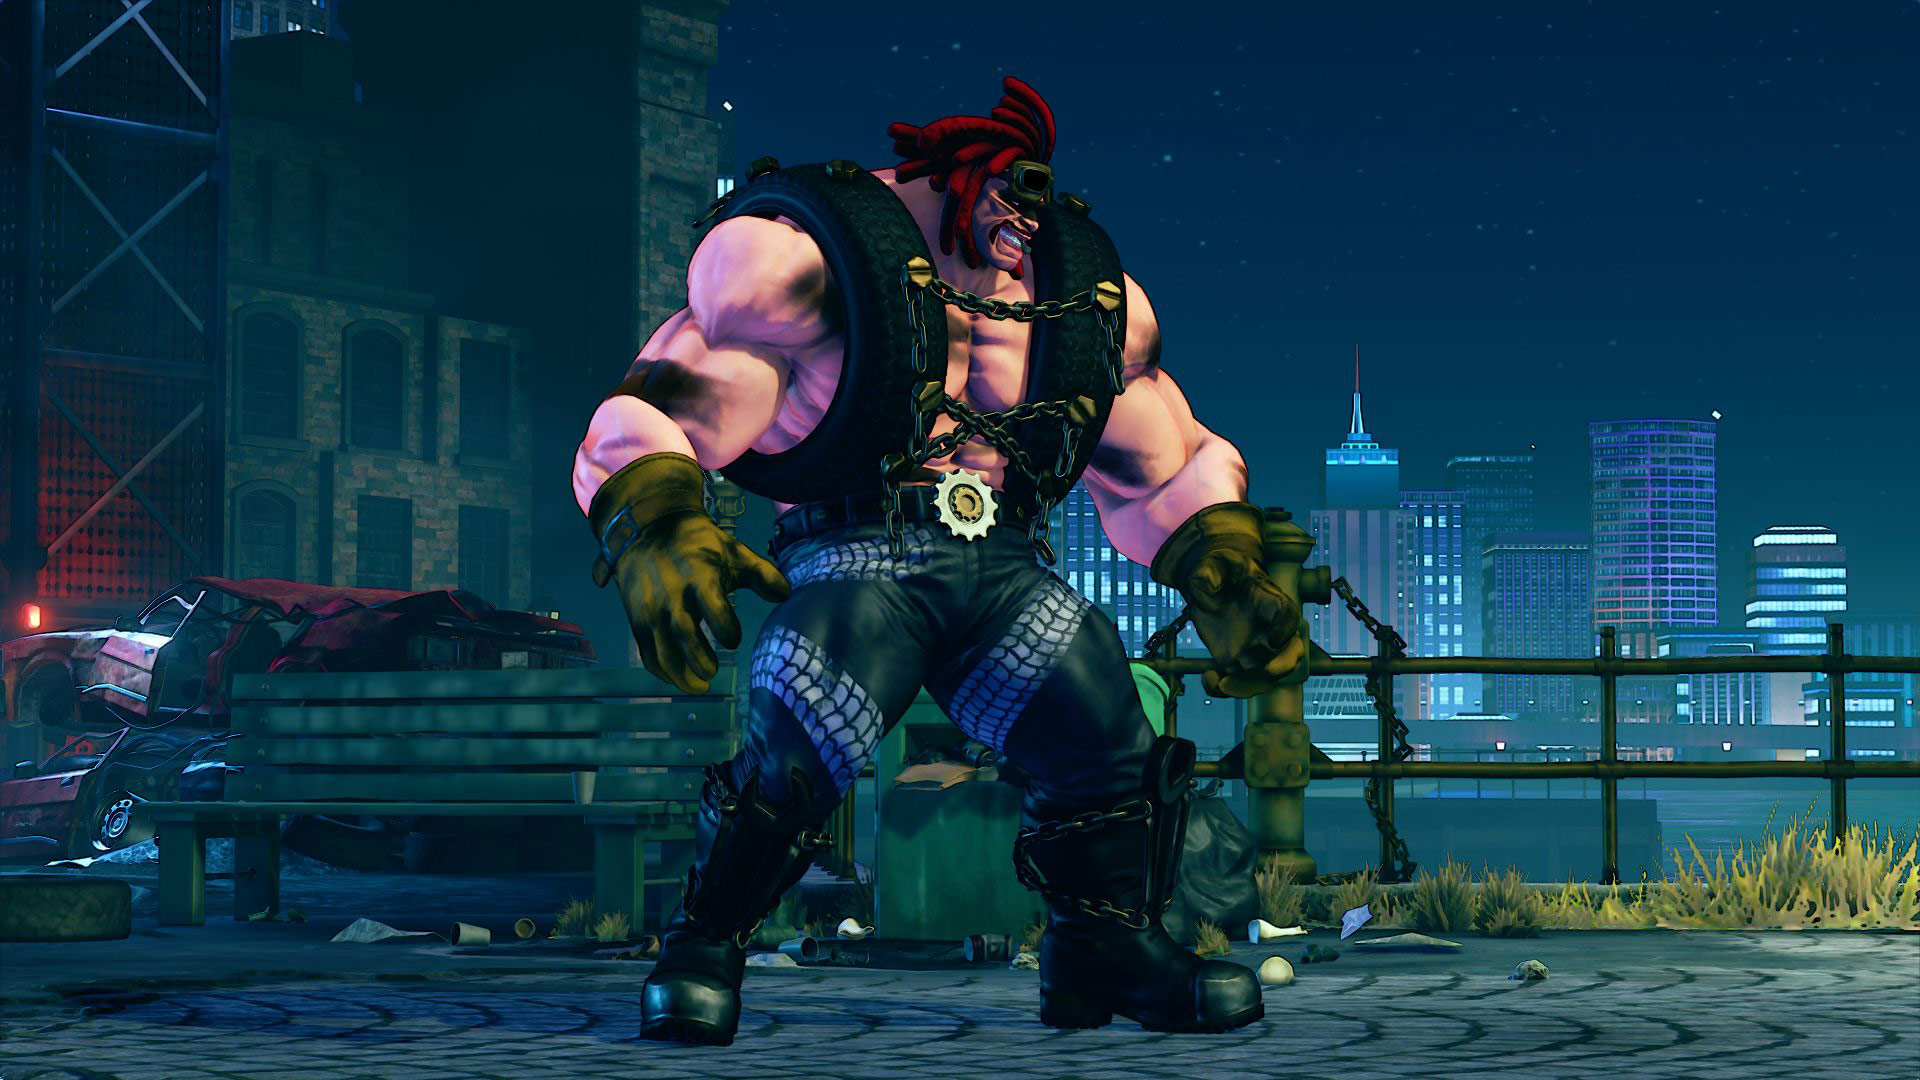 Abigail Street Fighter 5 7 out of 13 image gallery